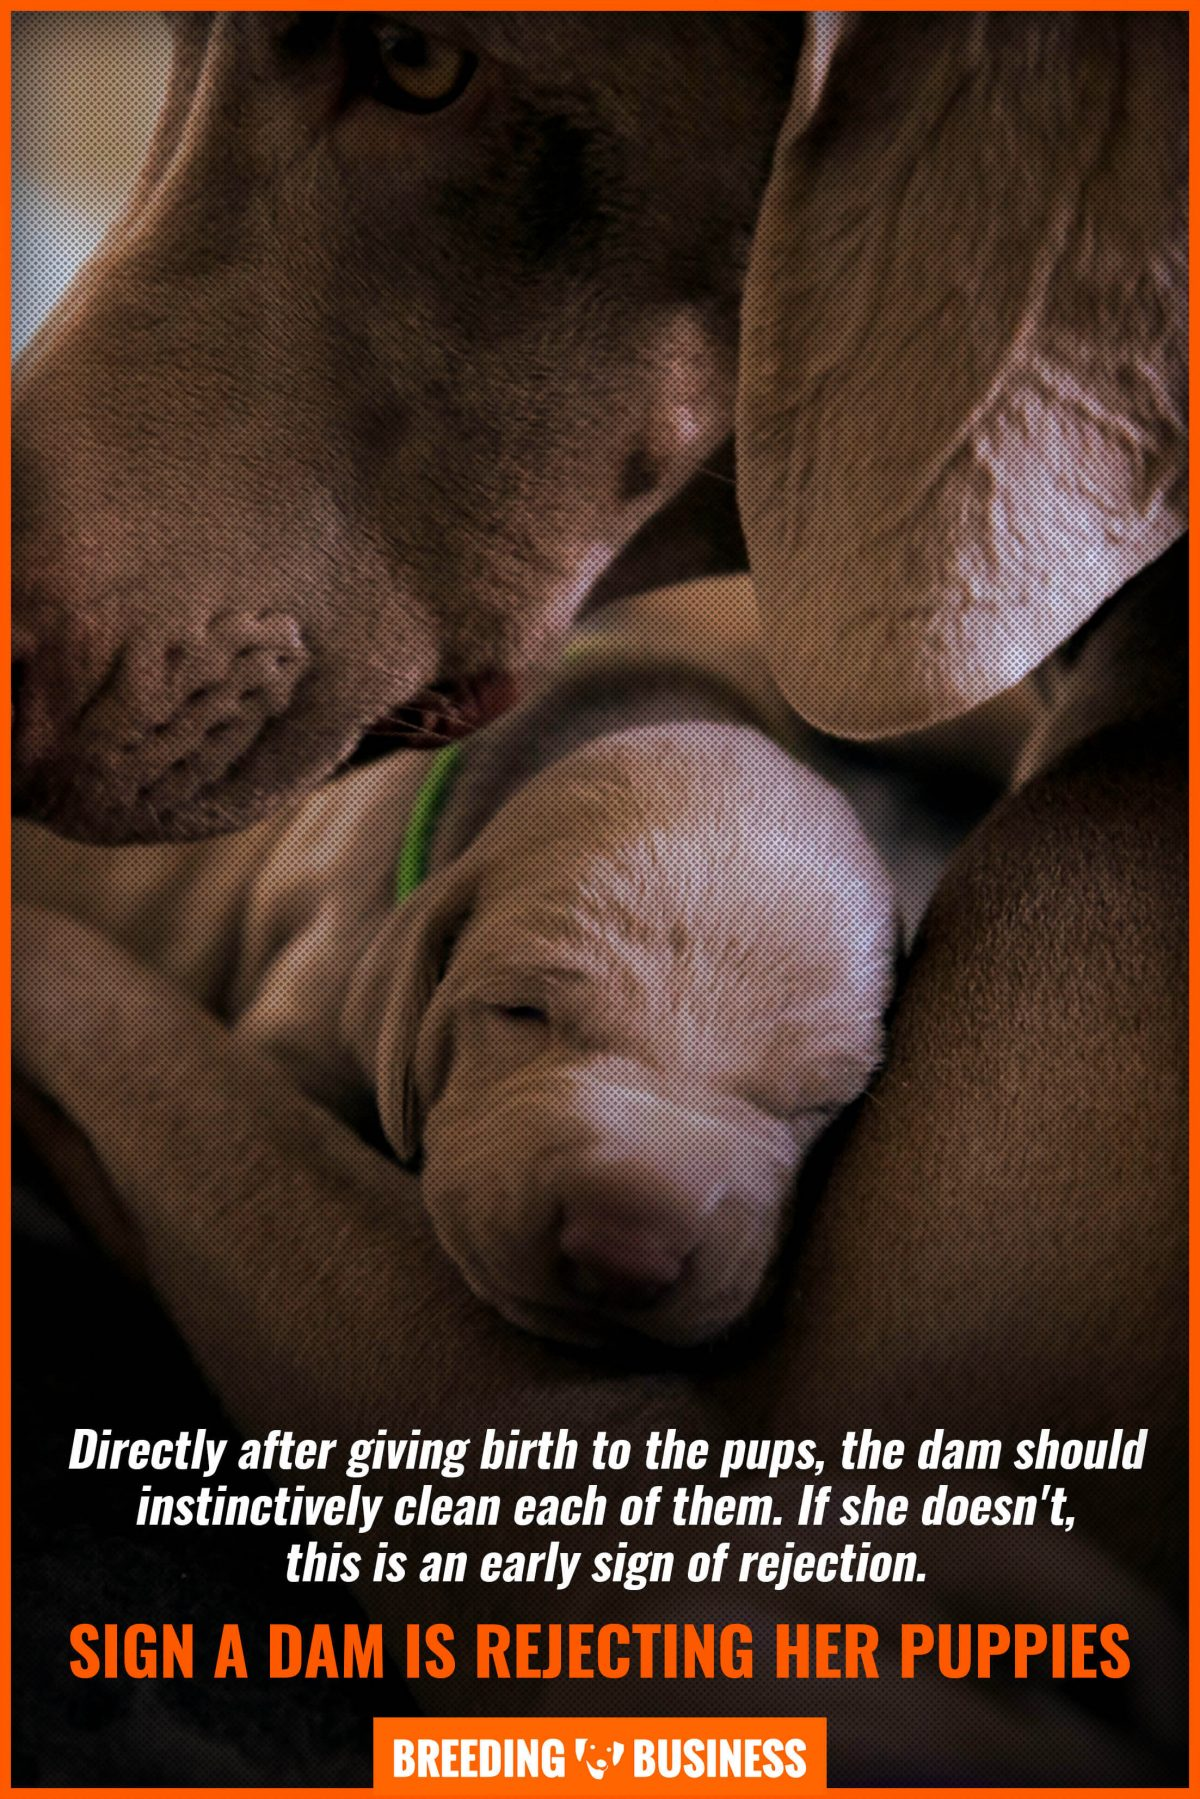 sign a dam is rejecting her puppies